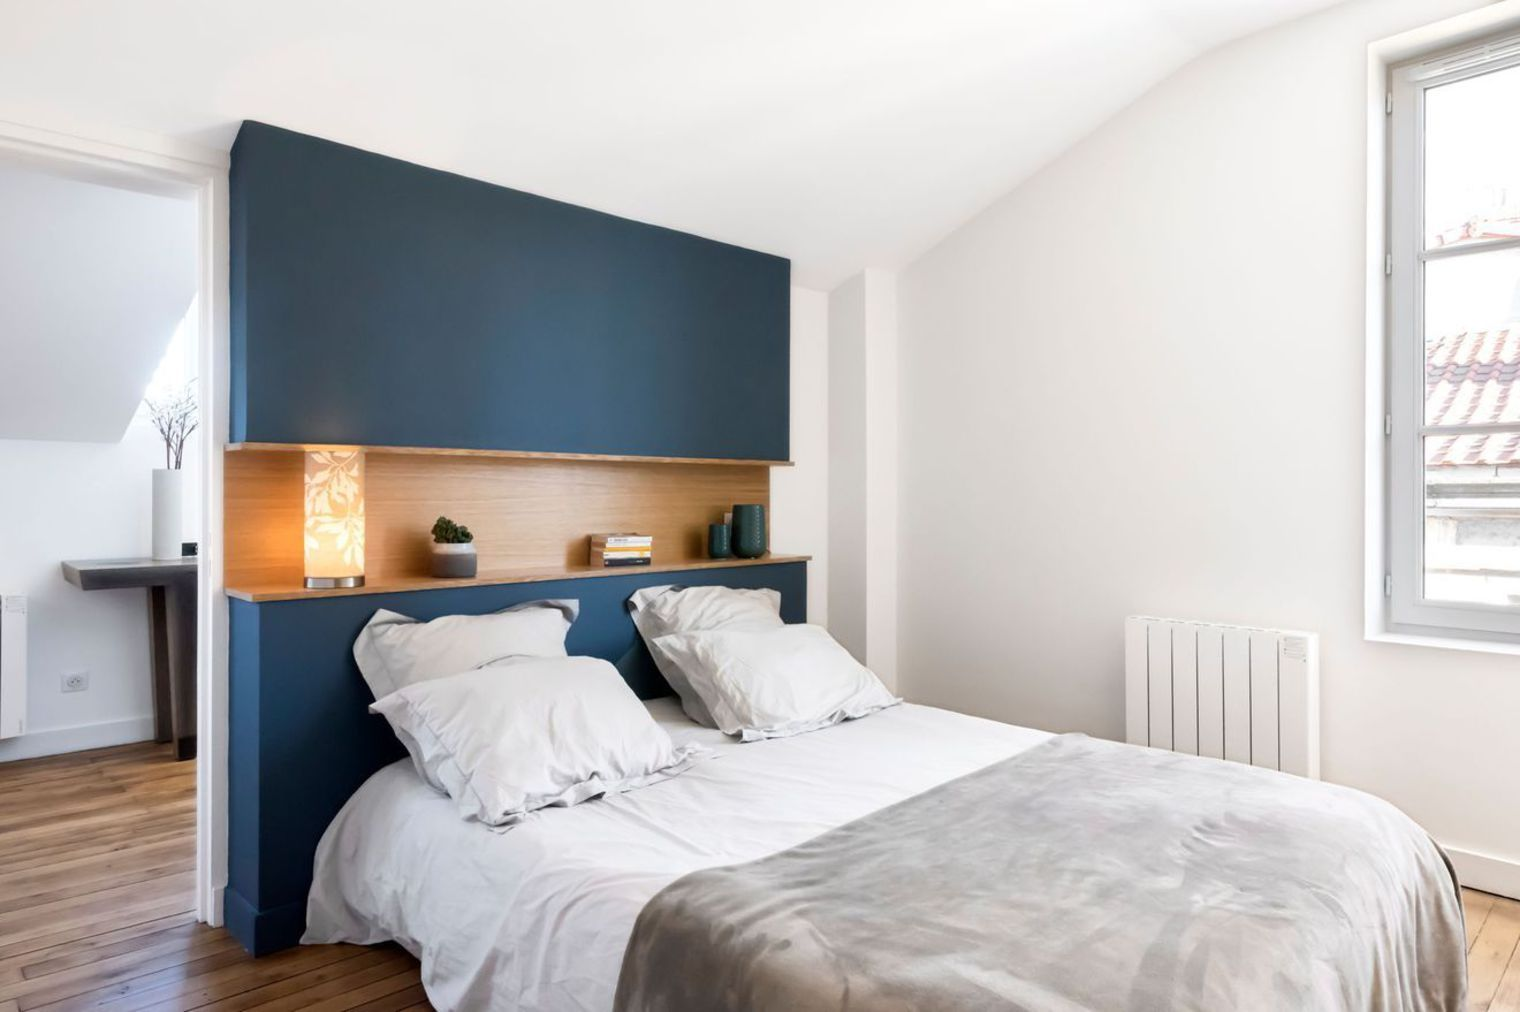 chambre parentale avec tete de lit bleu nuit parquet et murs blancs 1520 1012. Black Bedroom Furniture Sets. Home Design Ideas